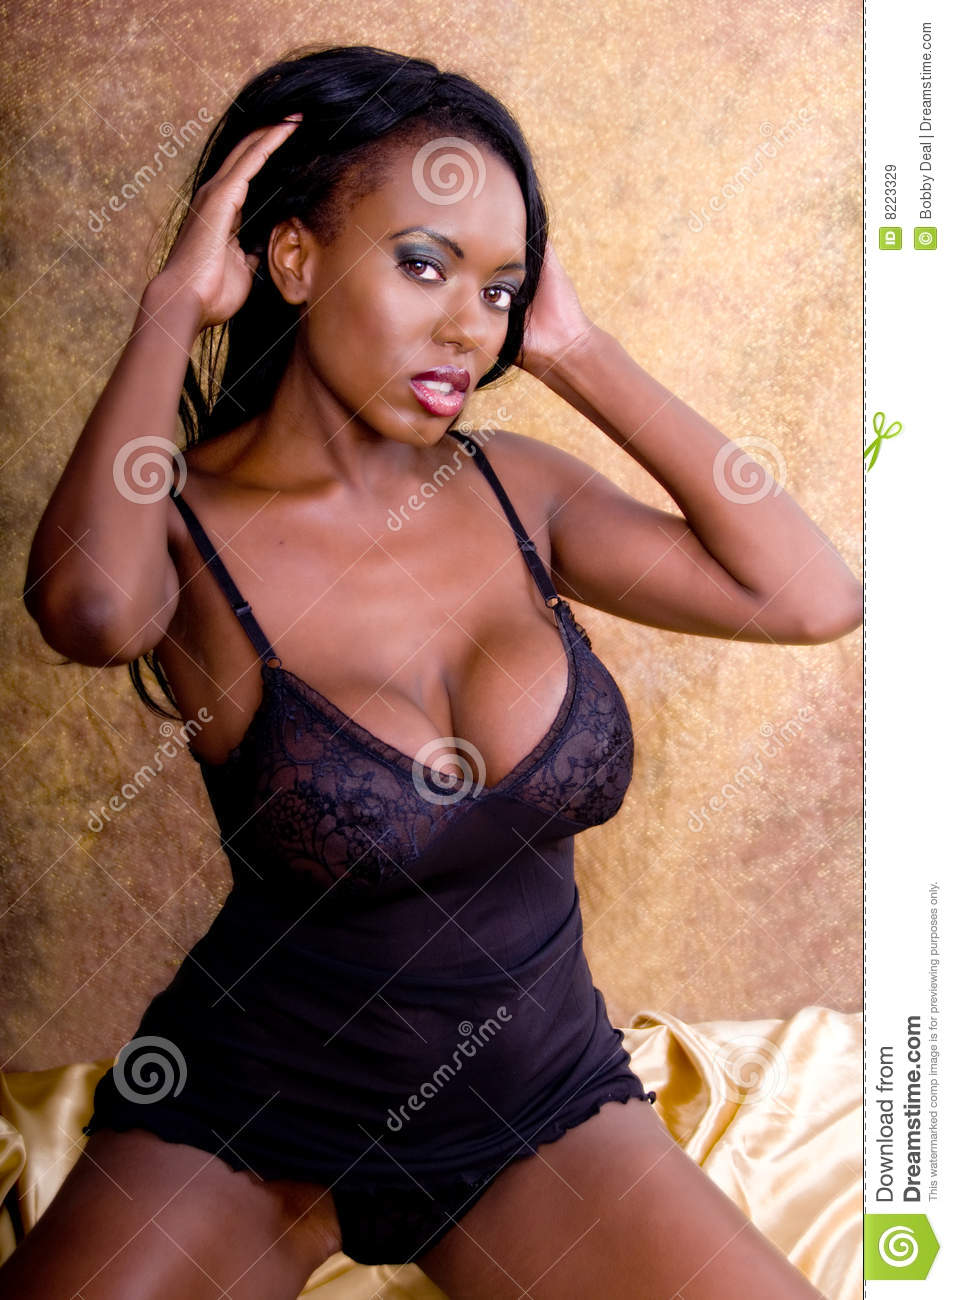 Lovely In Lingerie Royalty Free Stock Images Image 8223329